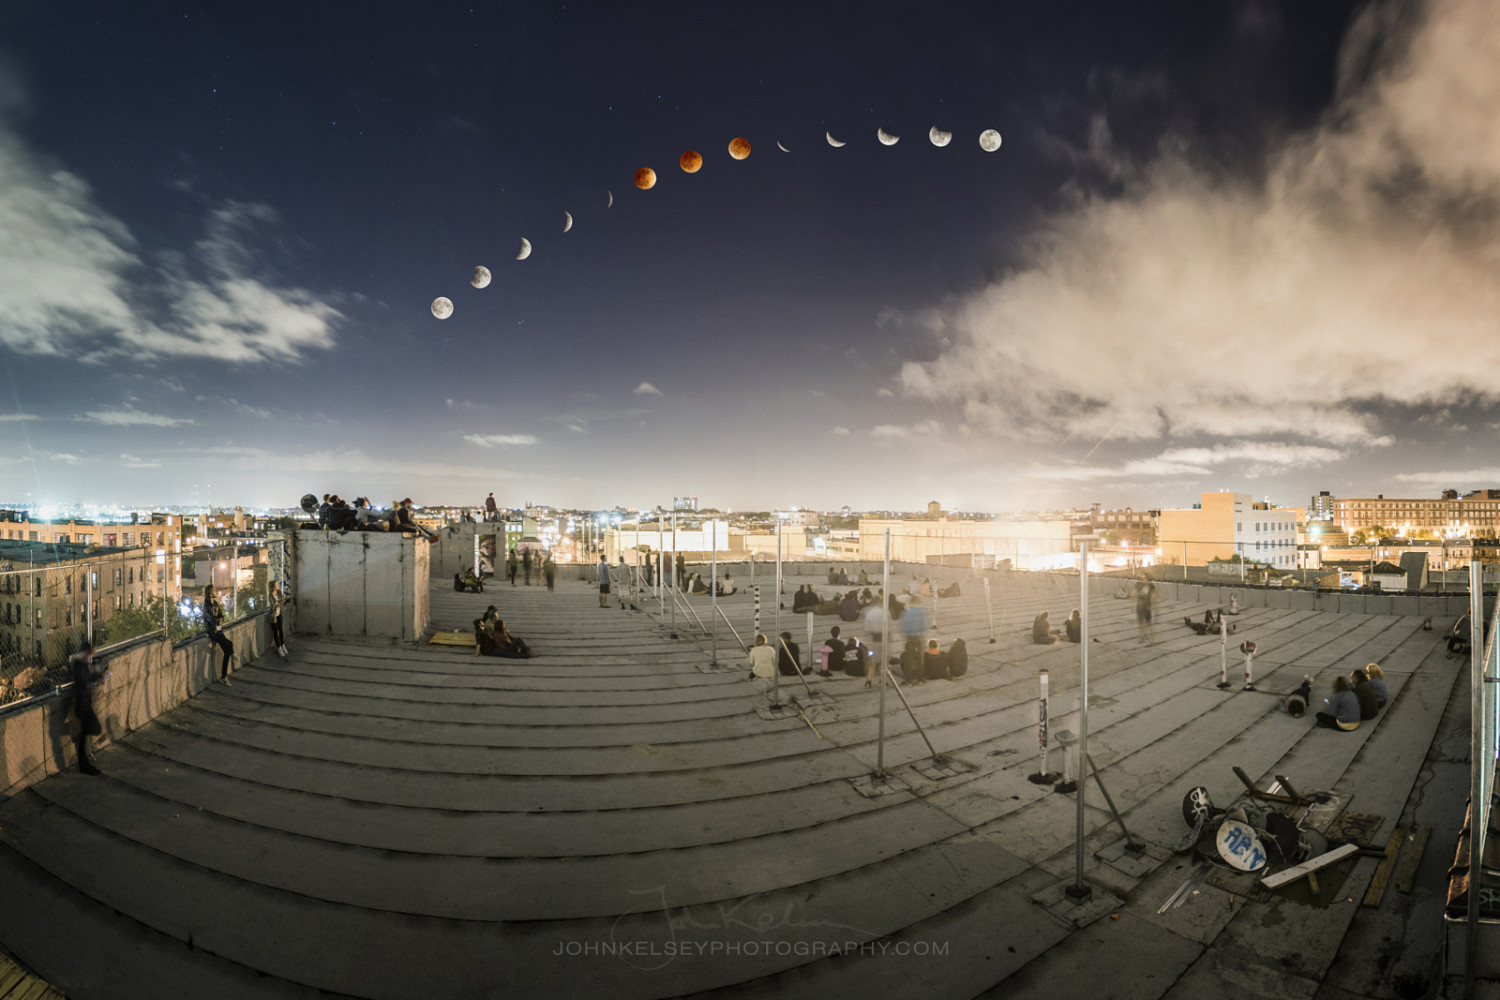 40 Amazing Eclipse Photos from Last Night's 'Super Blood Moon'